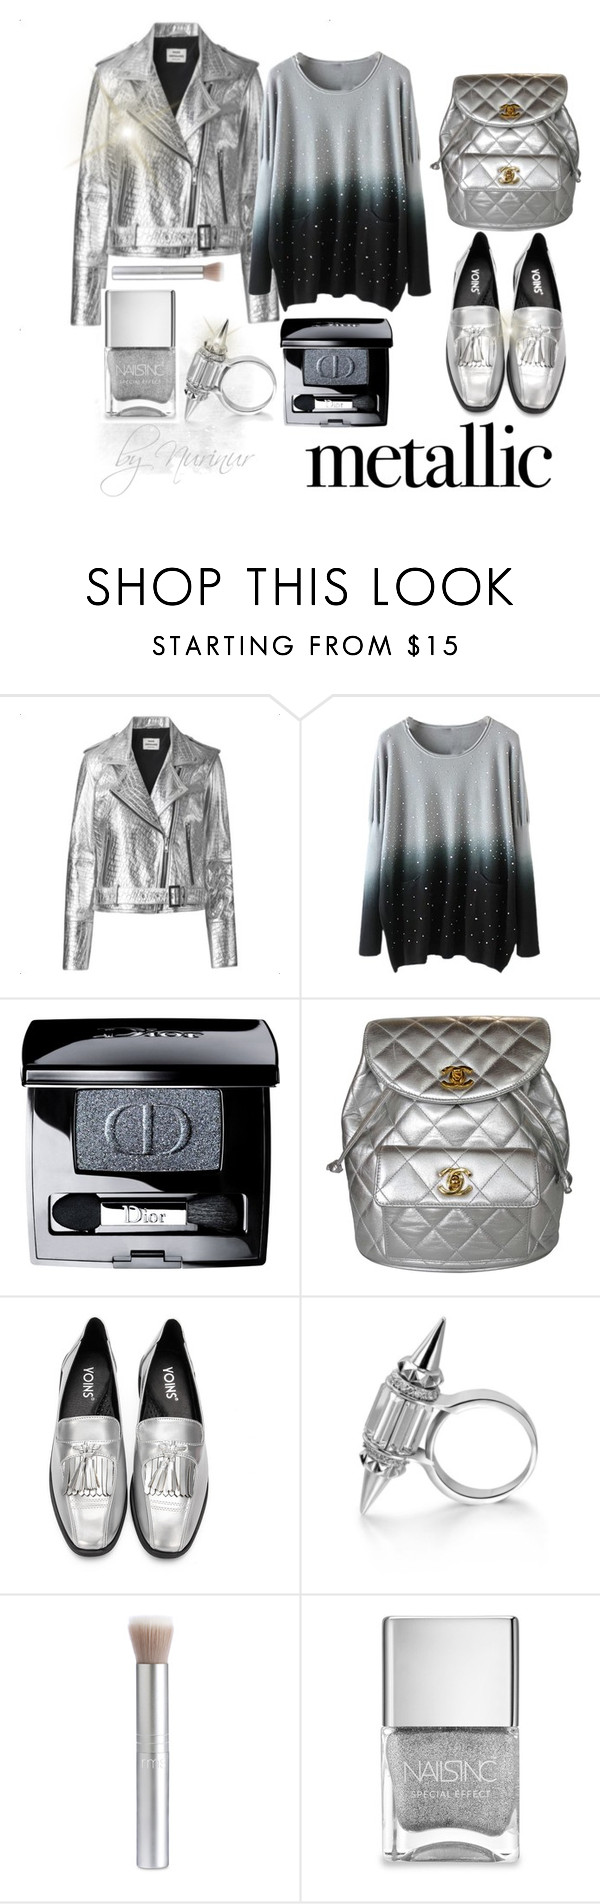 """Metal look ... the future today"" by nurinur ❤ liked on Polyvore featuring Mads Nørgaard, Christian Dior, Chanel and Nails Inc."